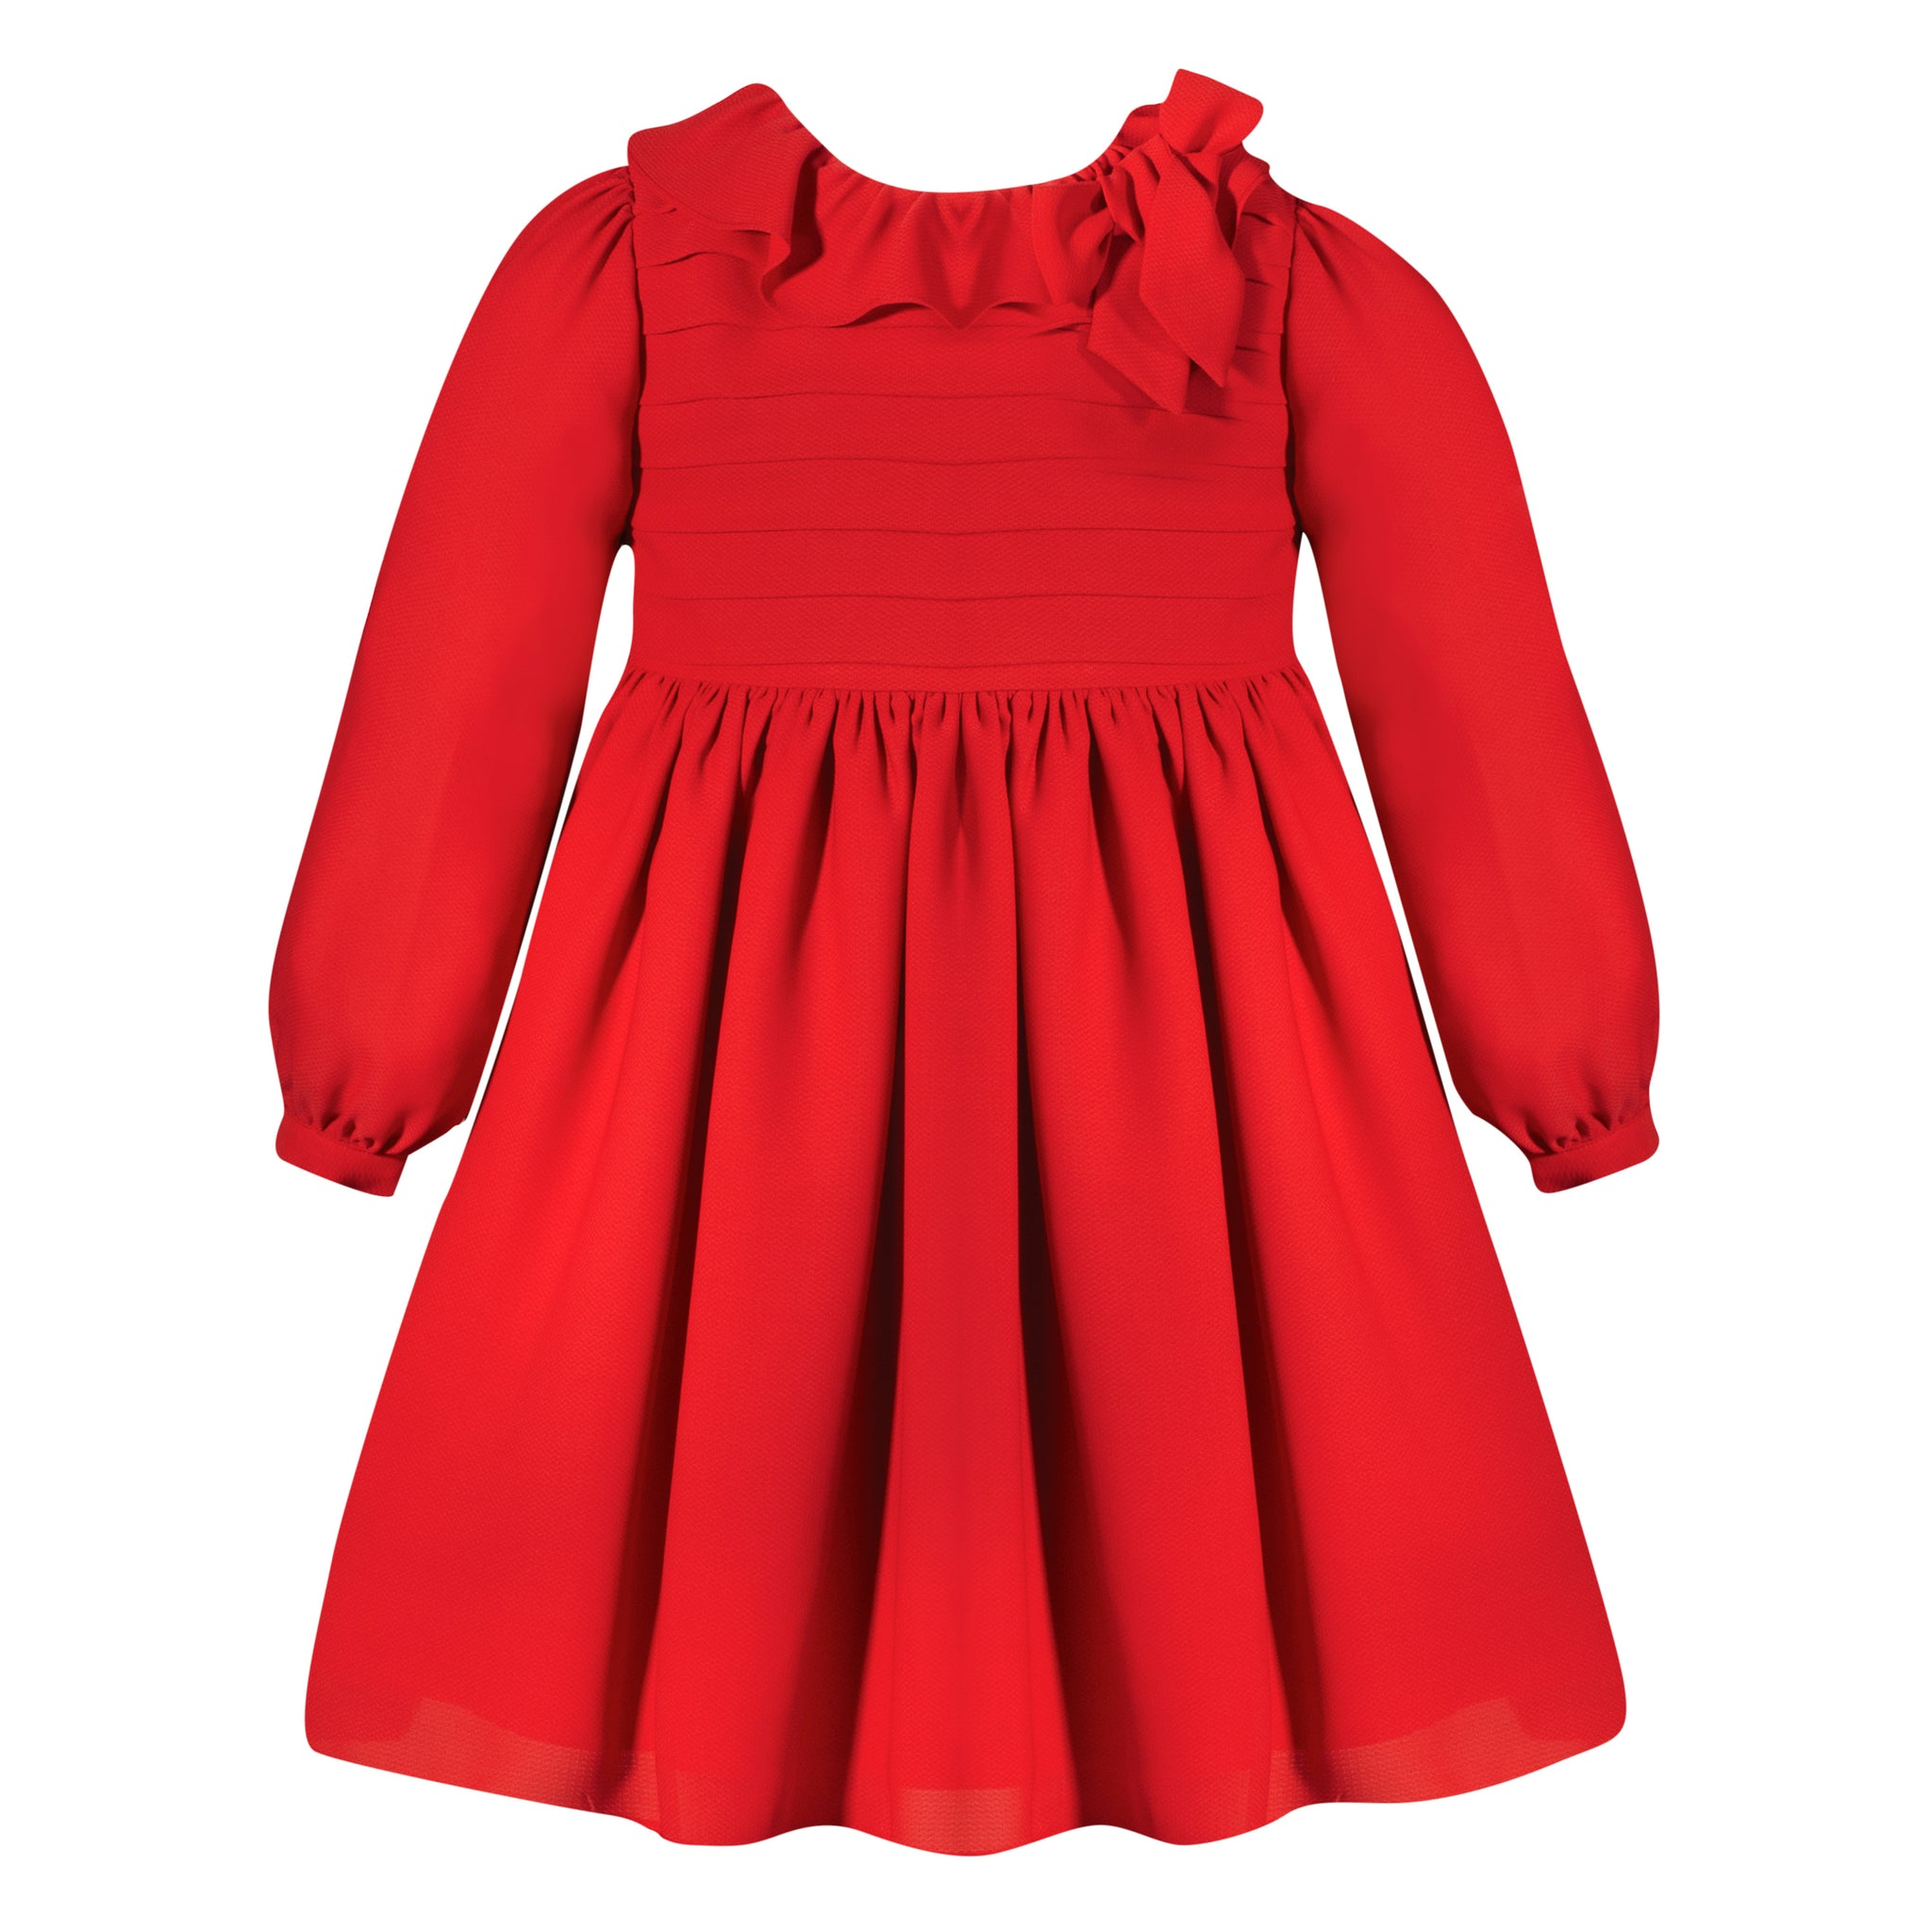 Girl's Red Chiffon Dress